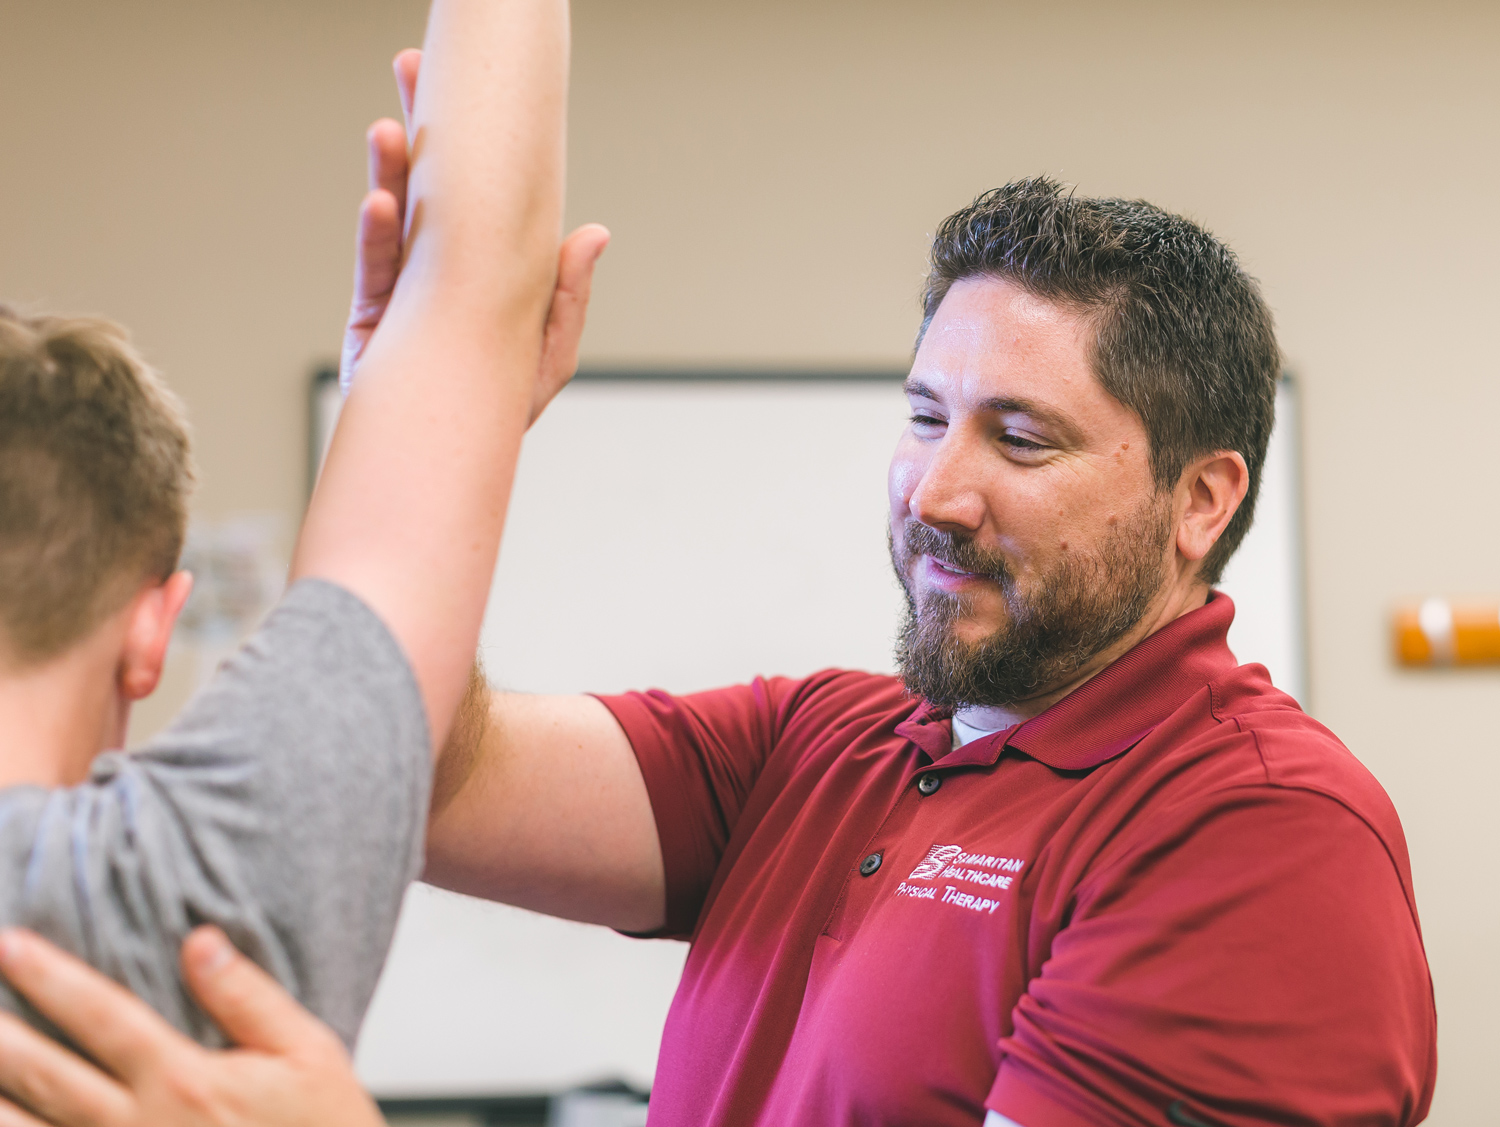 Physical therapist helps young man stretch arm.